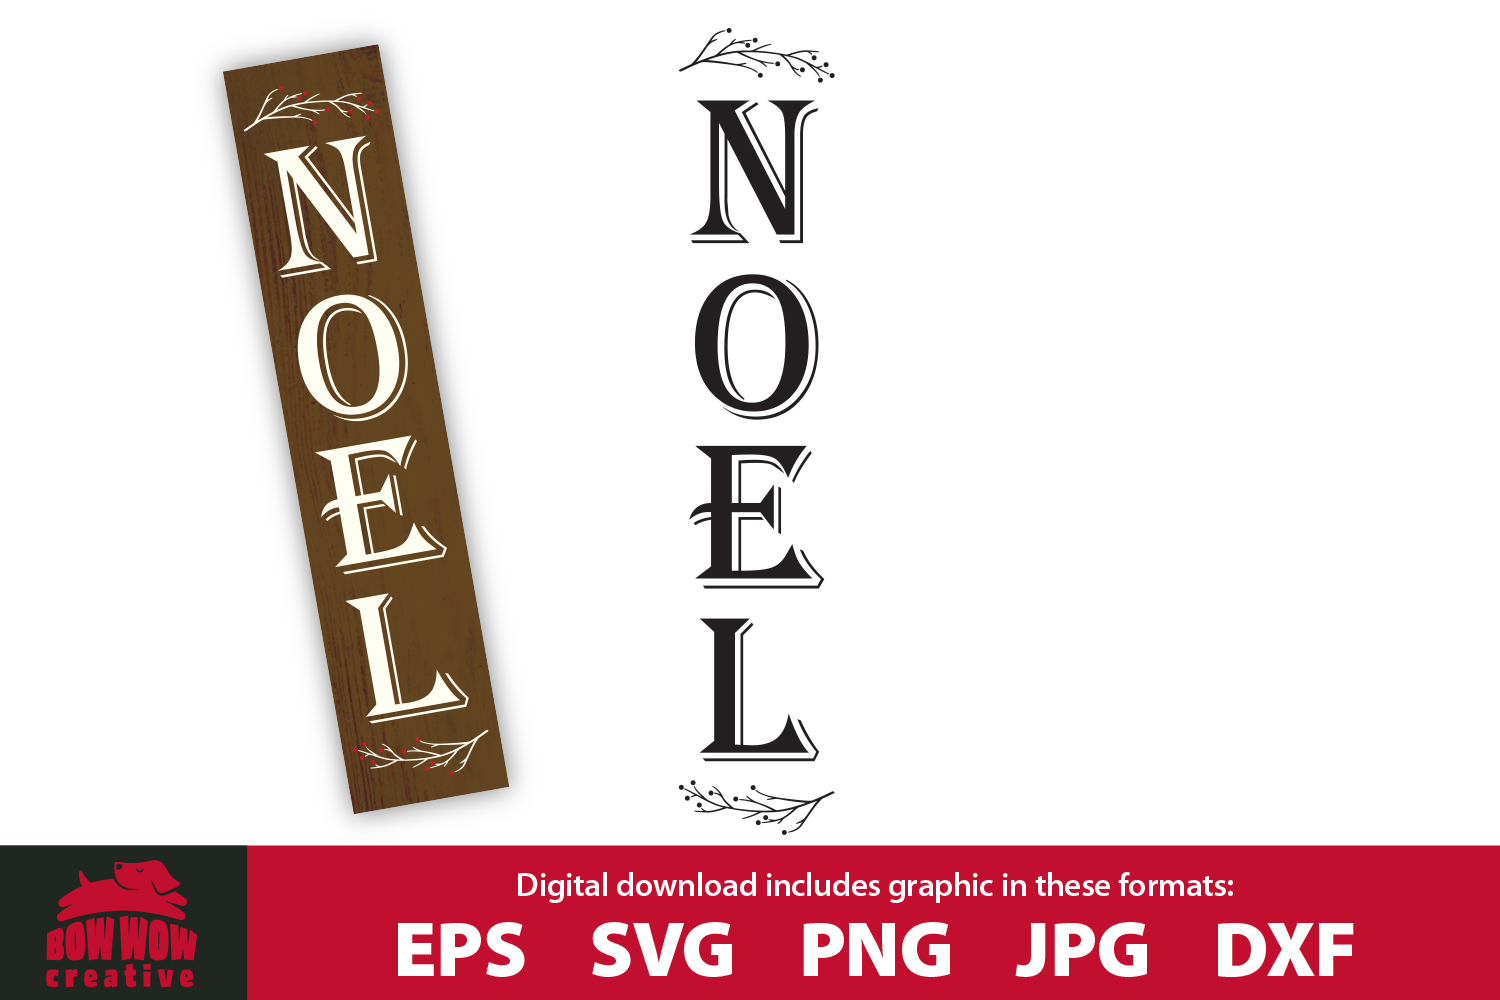 Christmas vertical porch sign - Noel - EPS SVG PNG JPG DXF example image 1